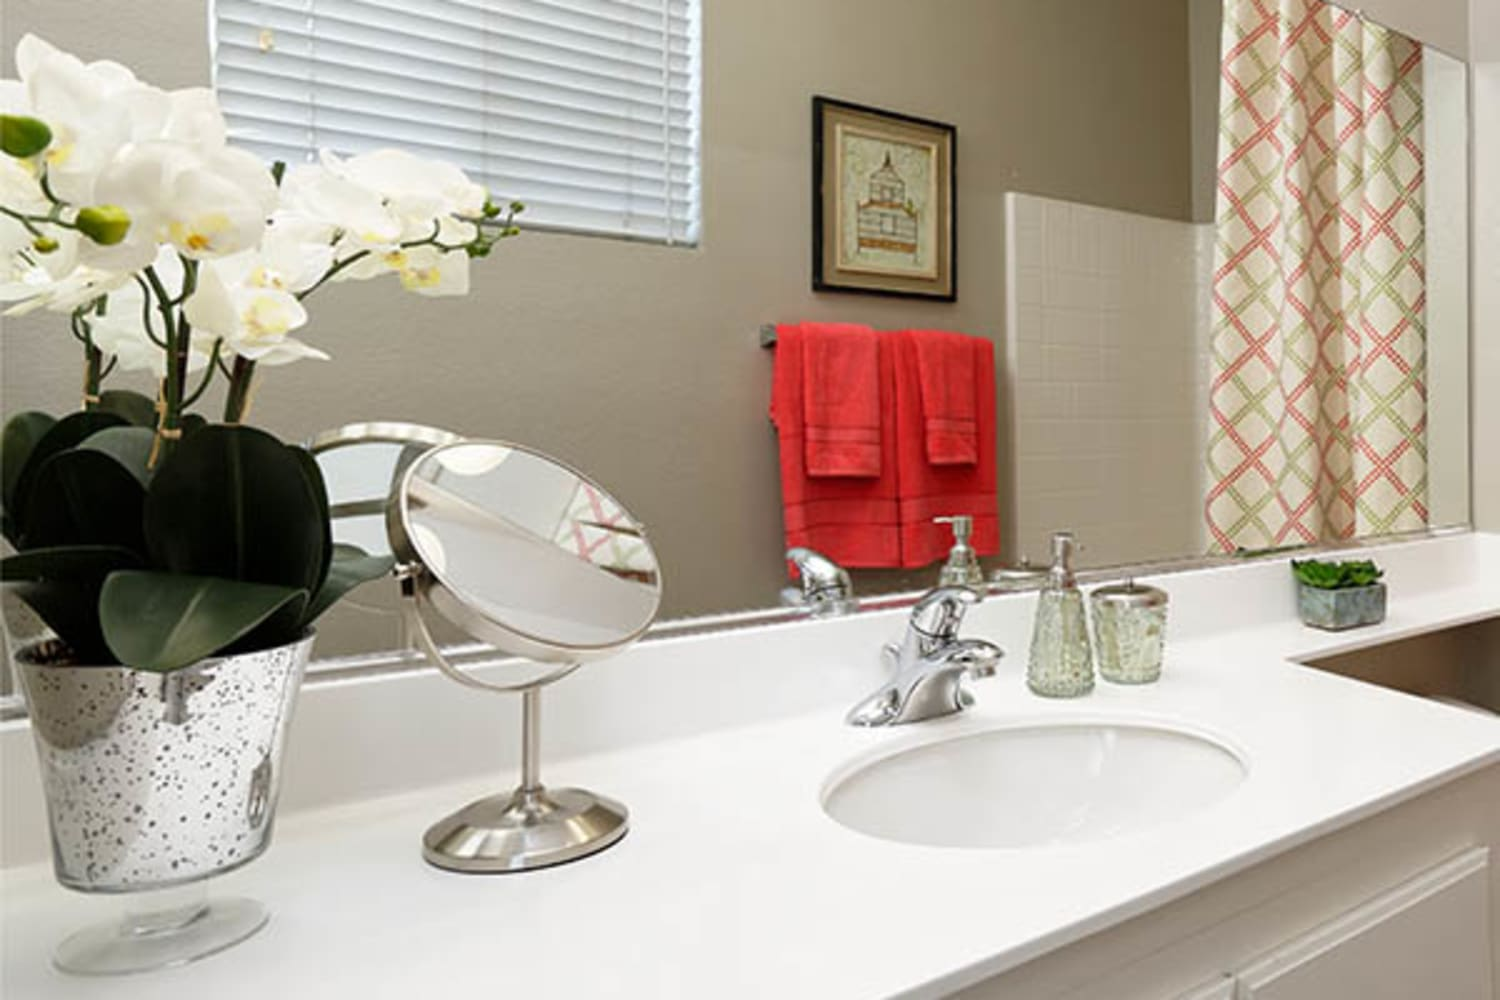 Camino Real offers bathrooms with ample counter space in Rancho Cucamonga, California